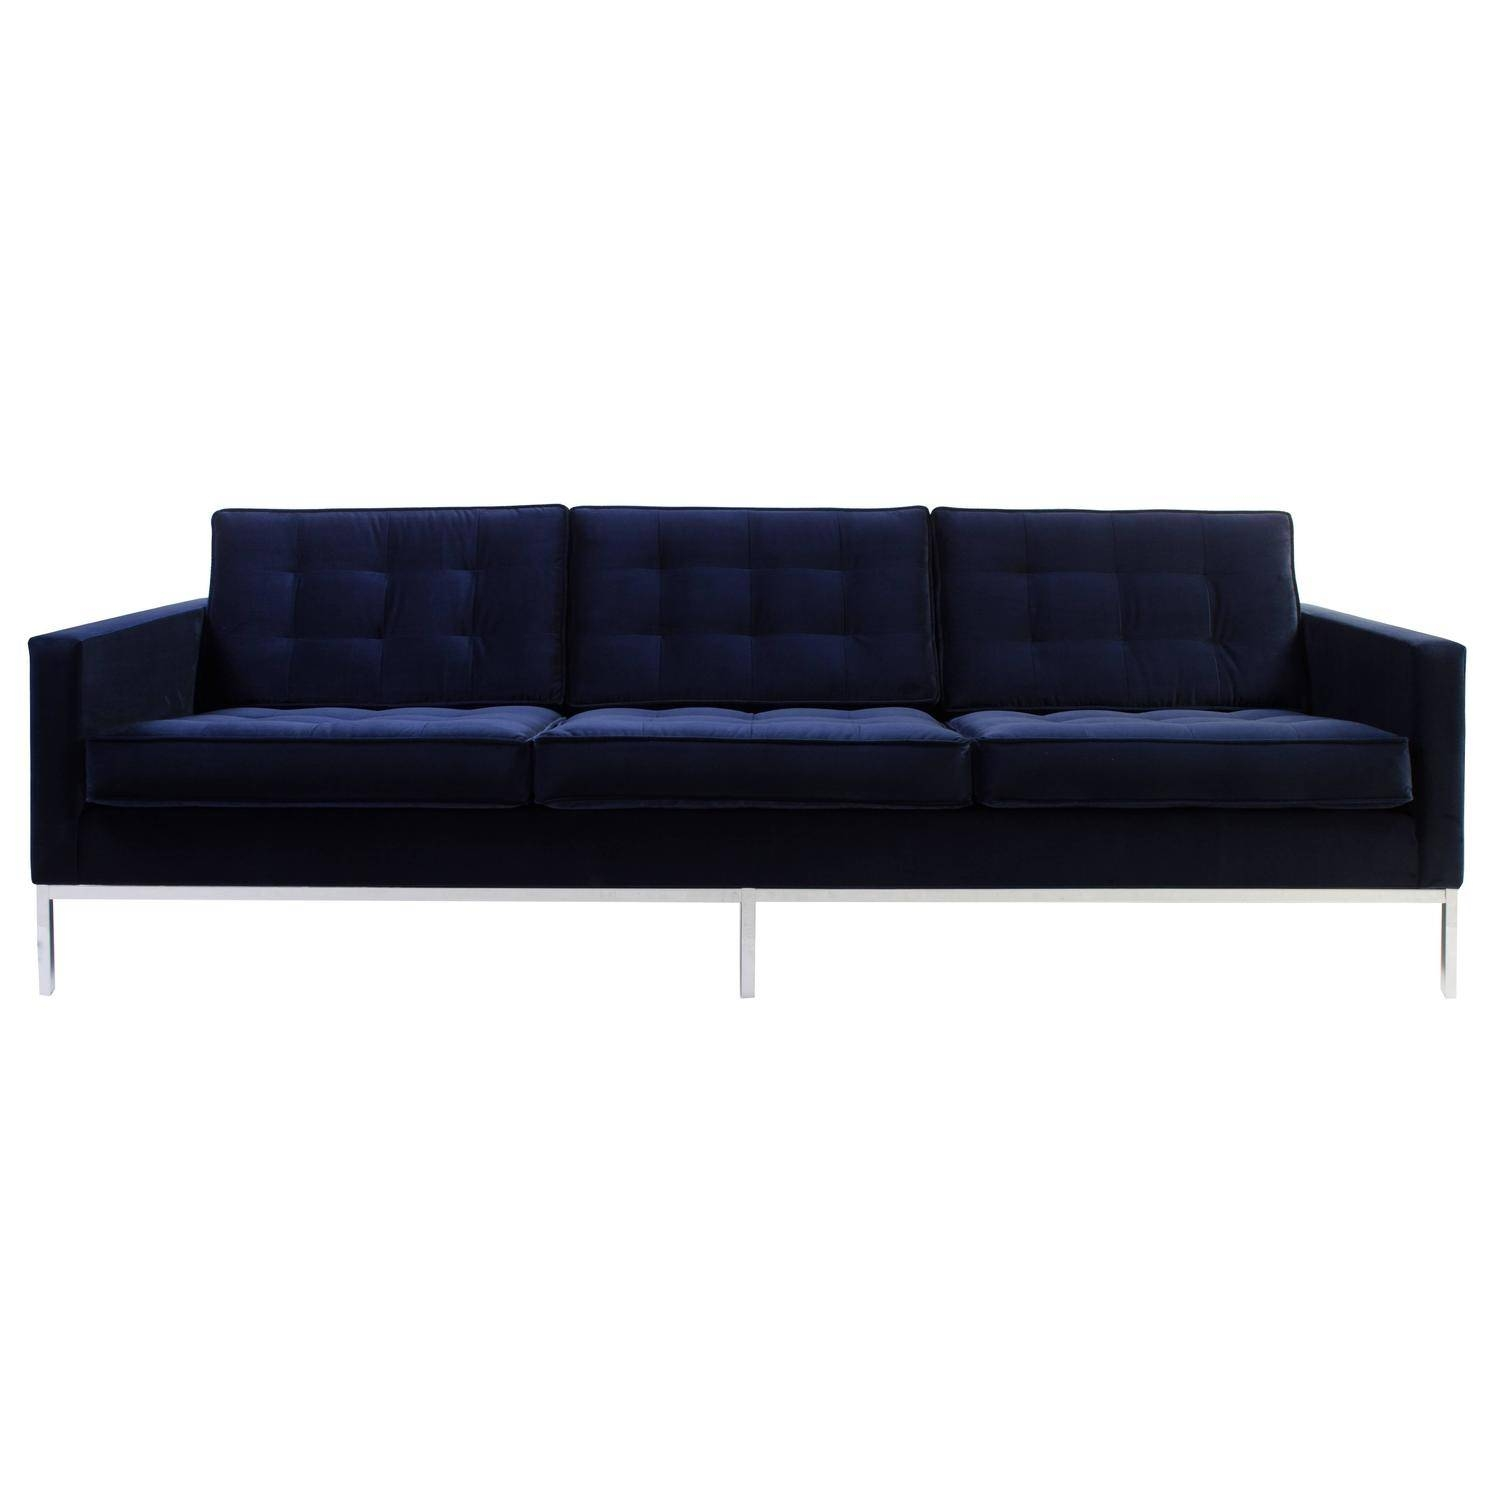 Florence Knoll Sofa In Navy Velvet For Sale At 1Stdibs Within Knoll Sofas (View 11 of 15)